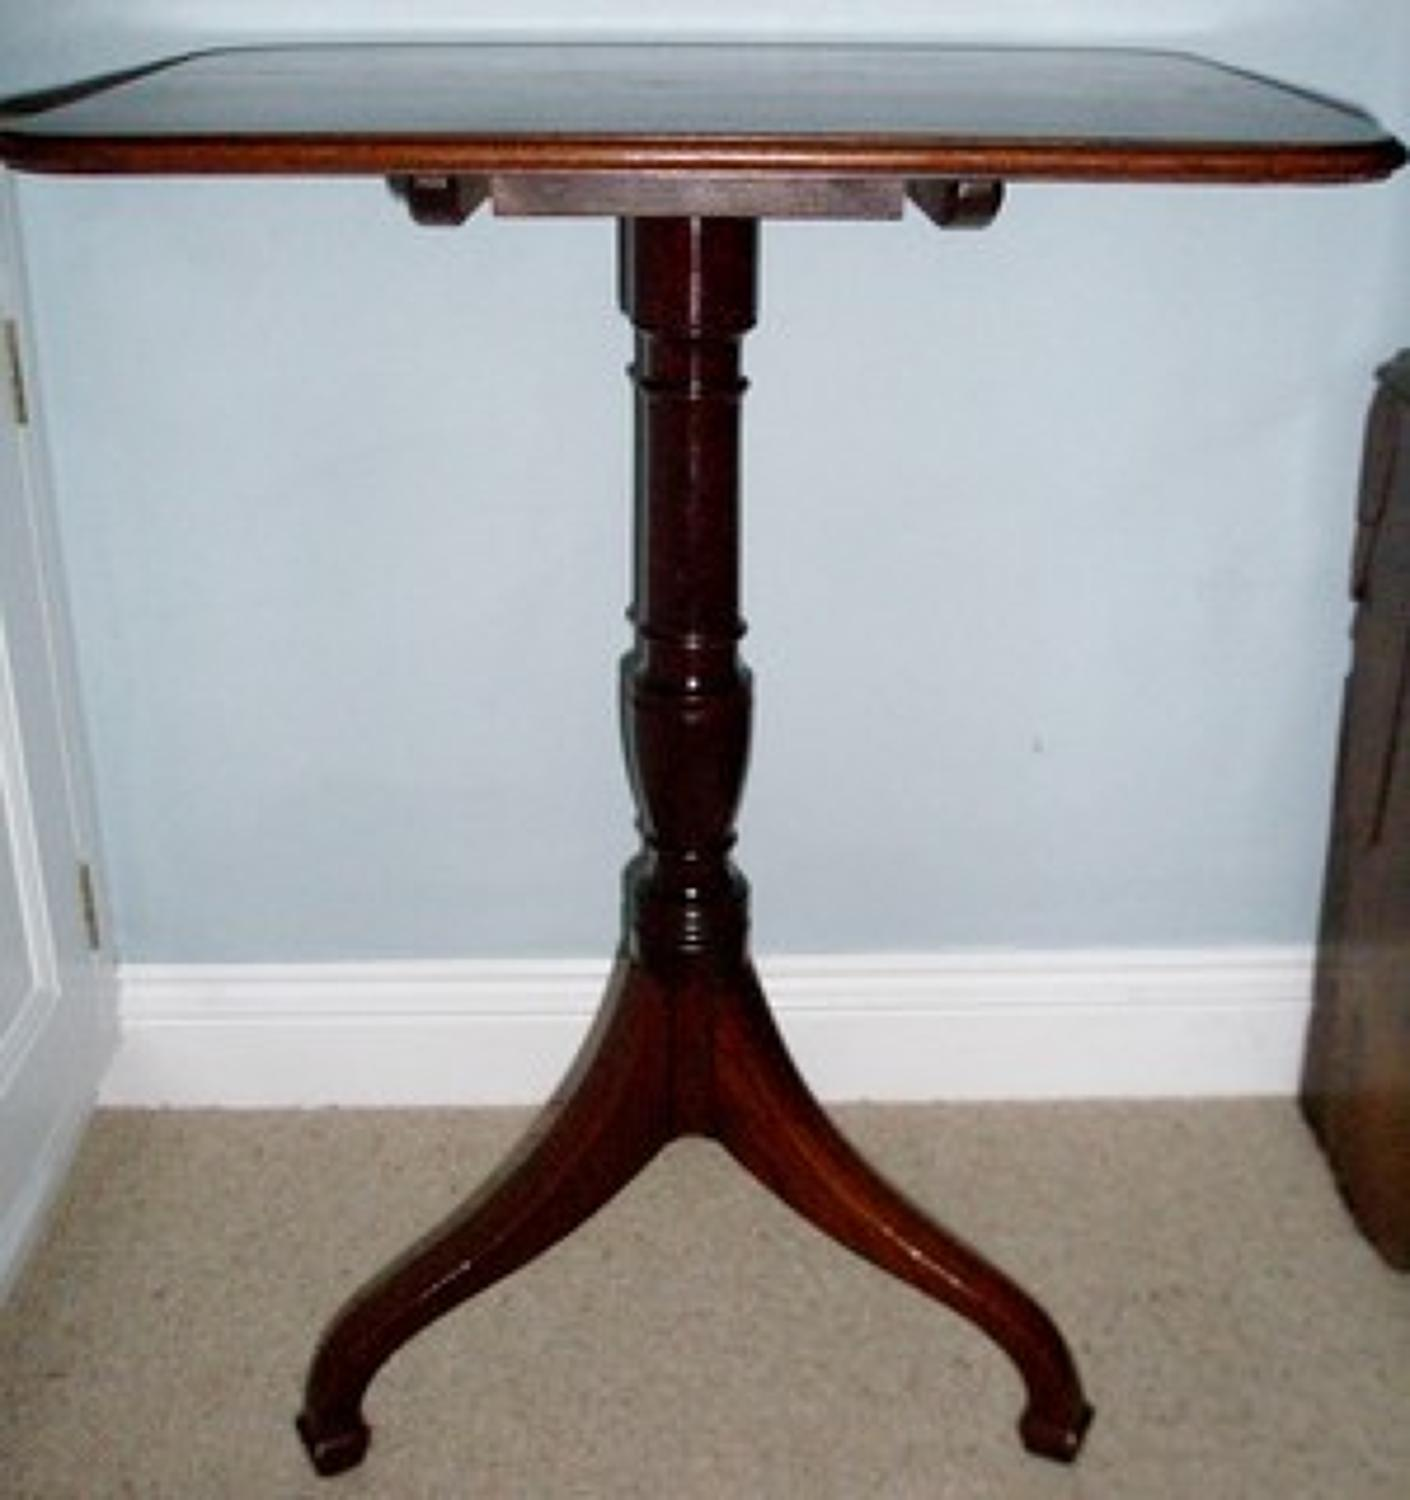 Regency period wine table